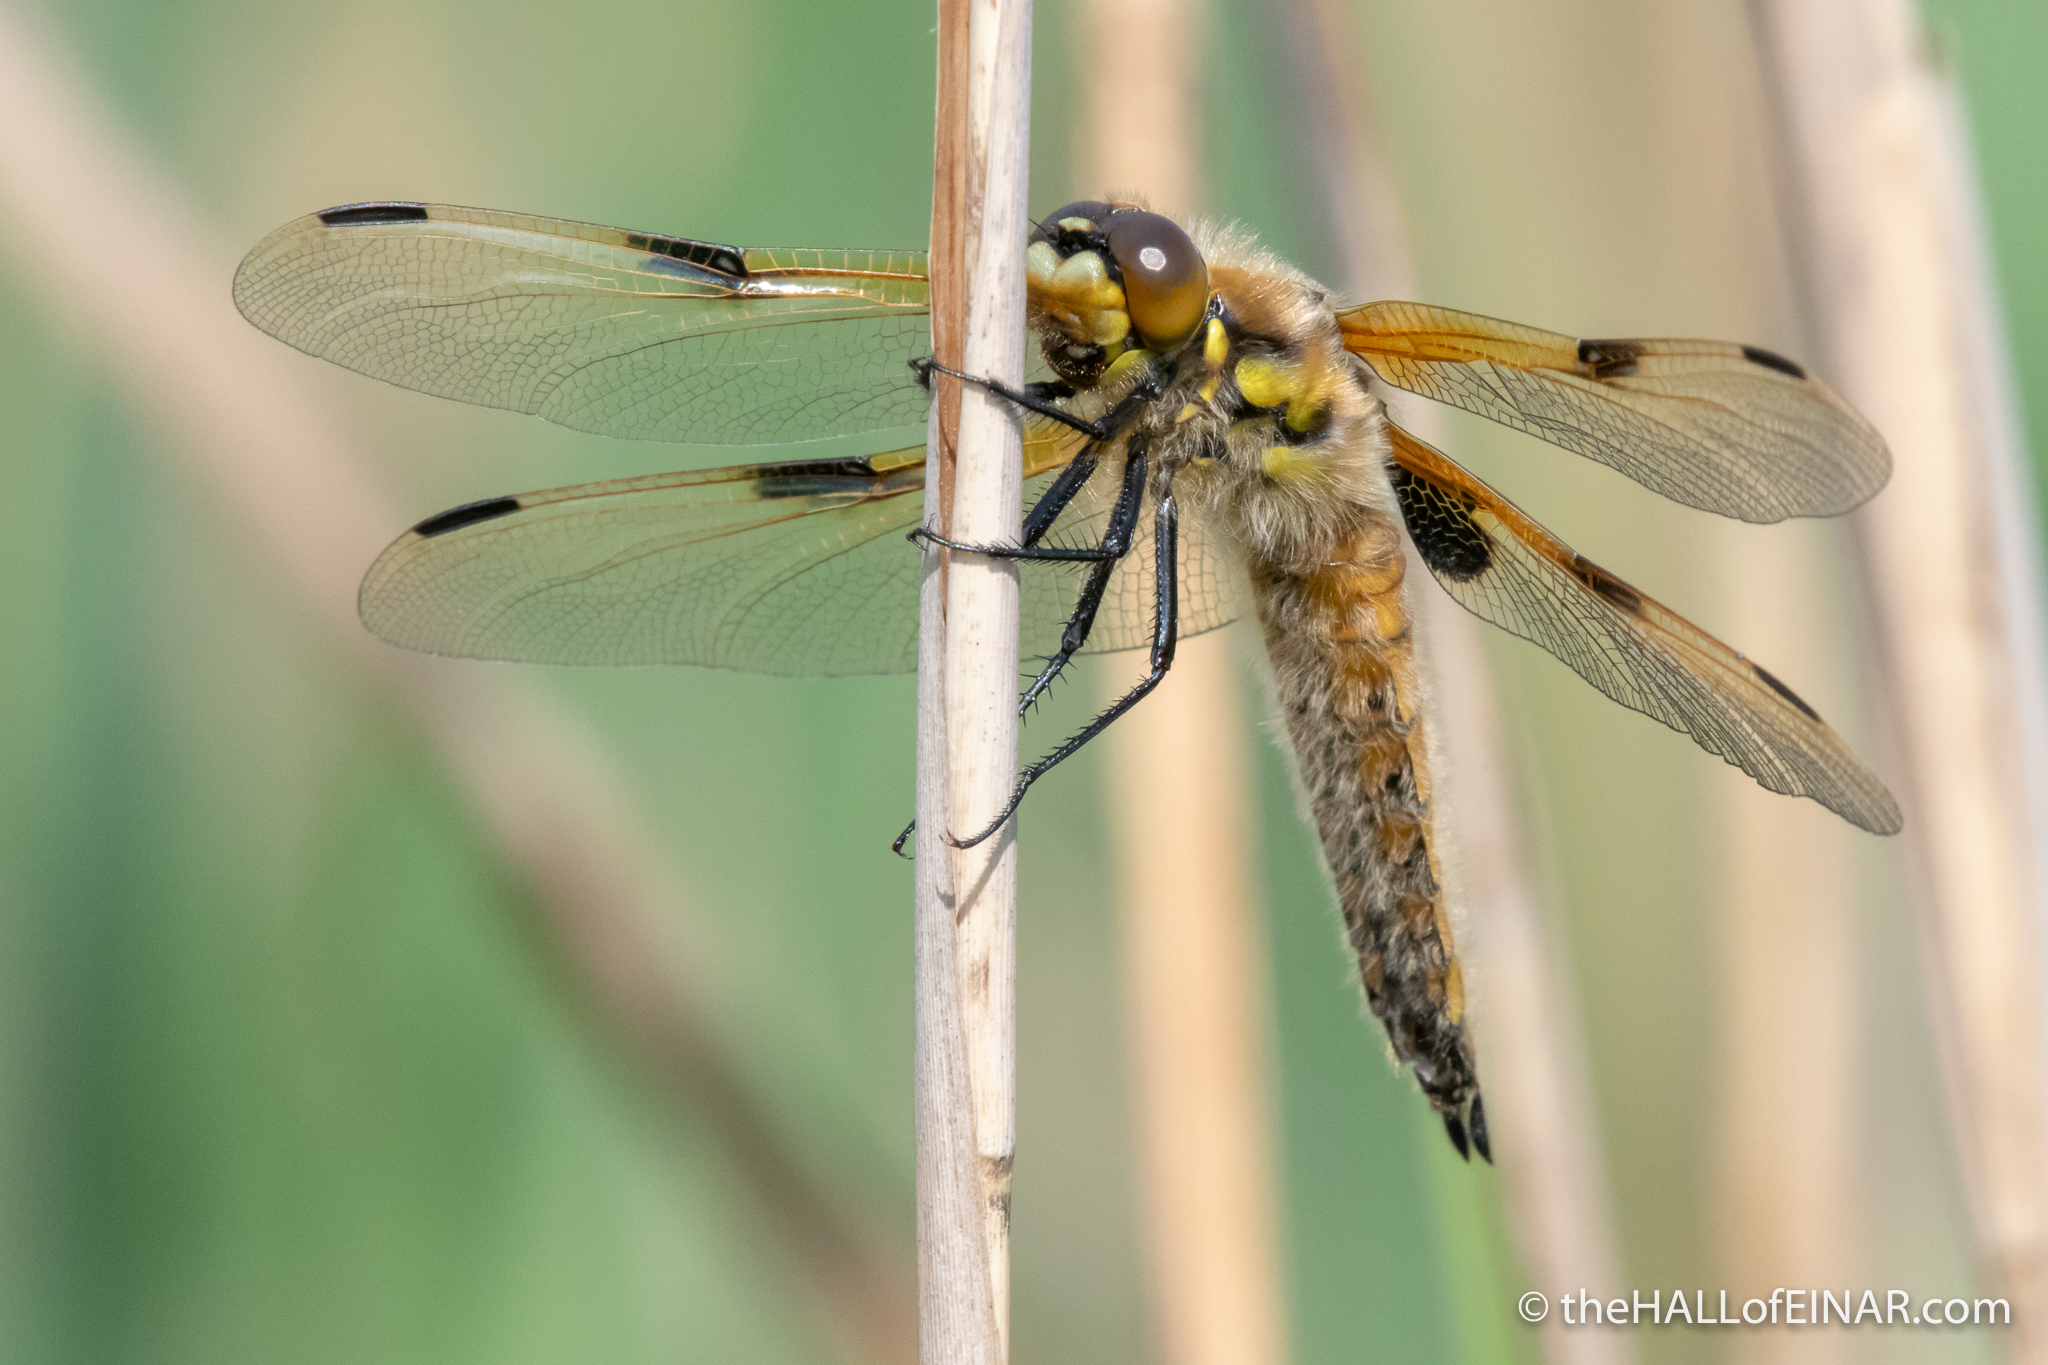 Four-Spotted Chaser - Ham Wall - The Hall of Einar - photograph (c) David Bailey (not the)